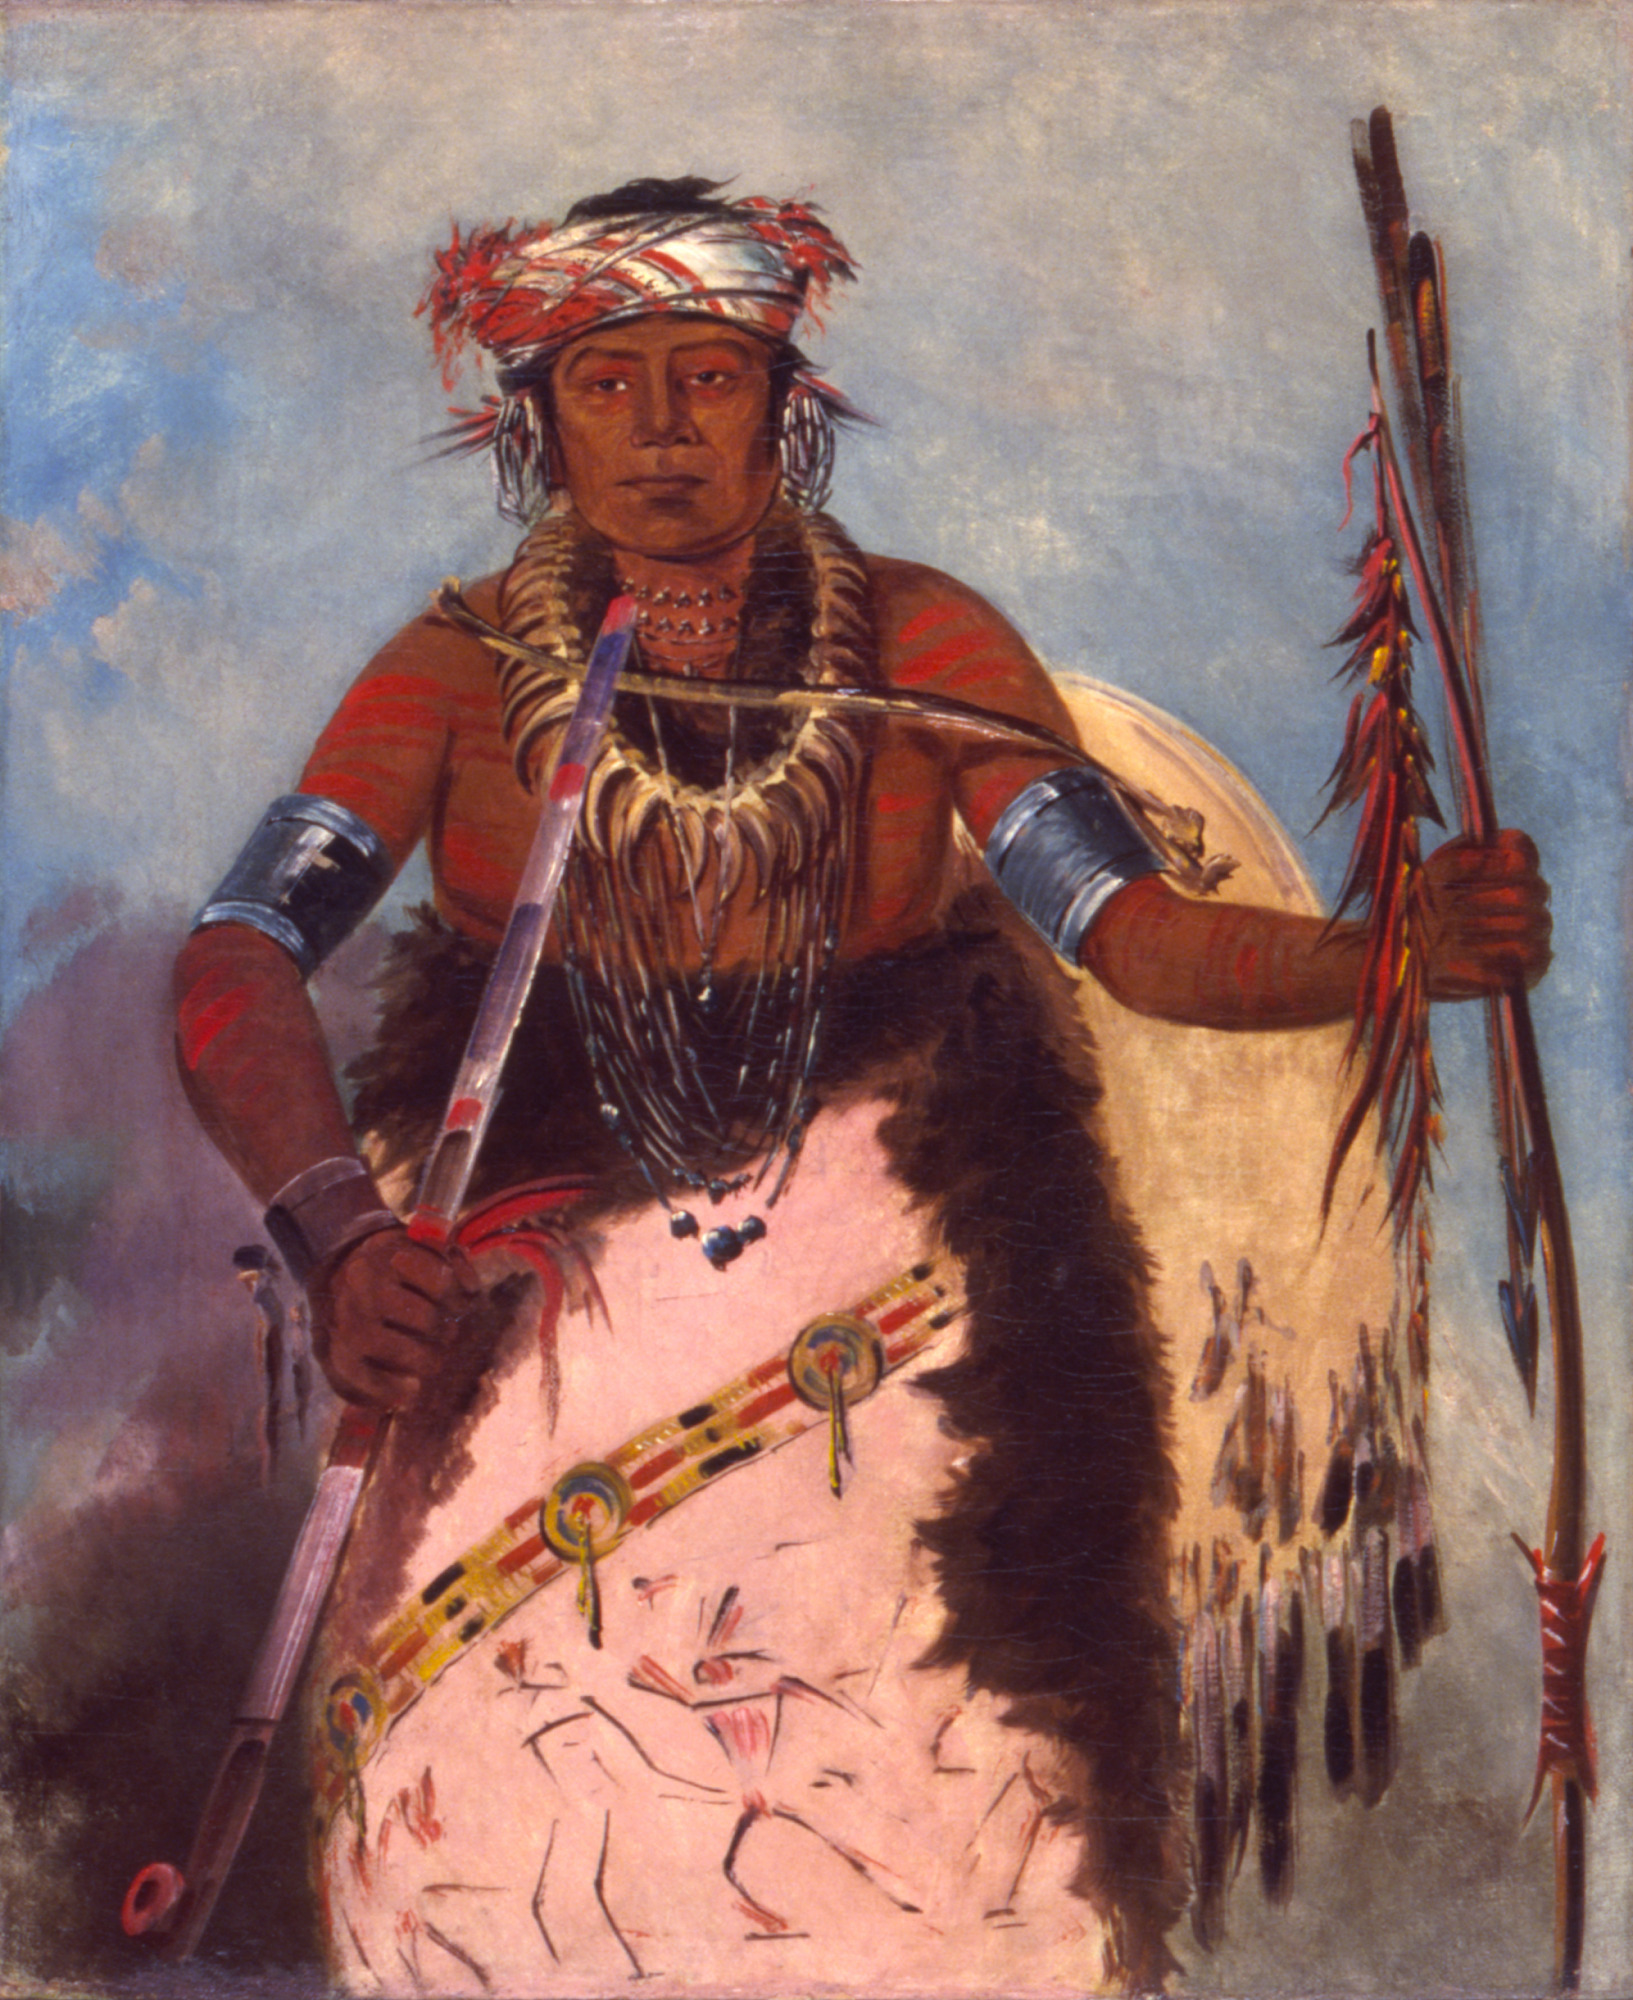 Notch-ee-níng-a, No Heart, (called White Cloud), Chief of the Tribe